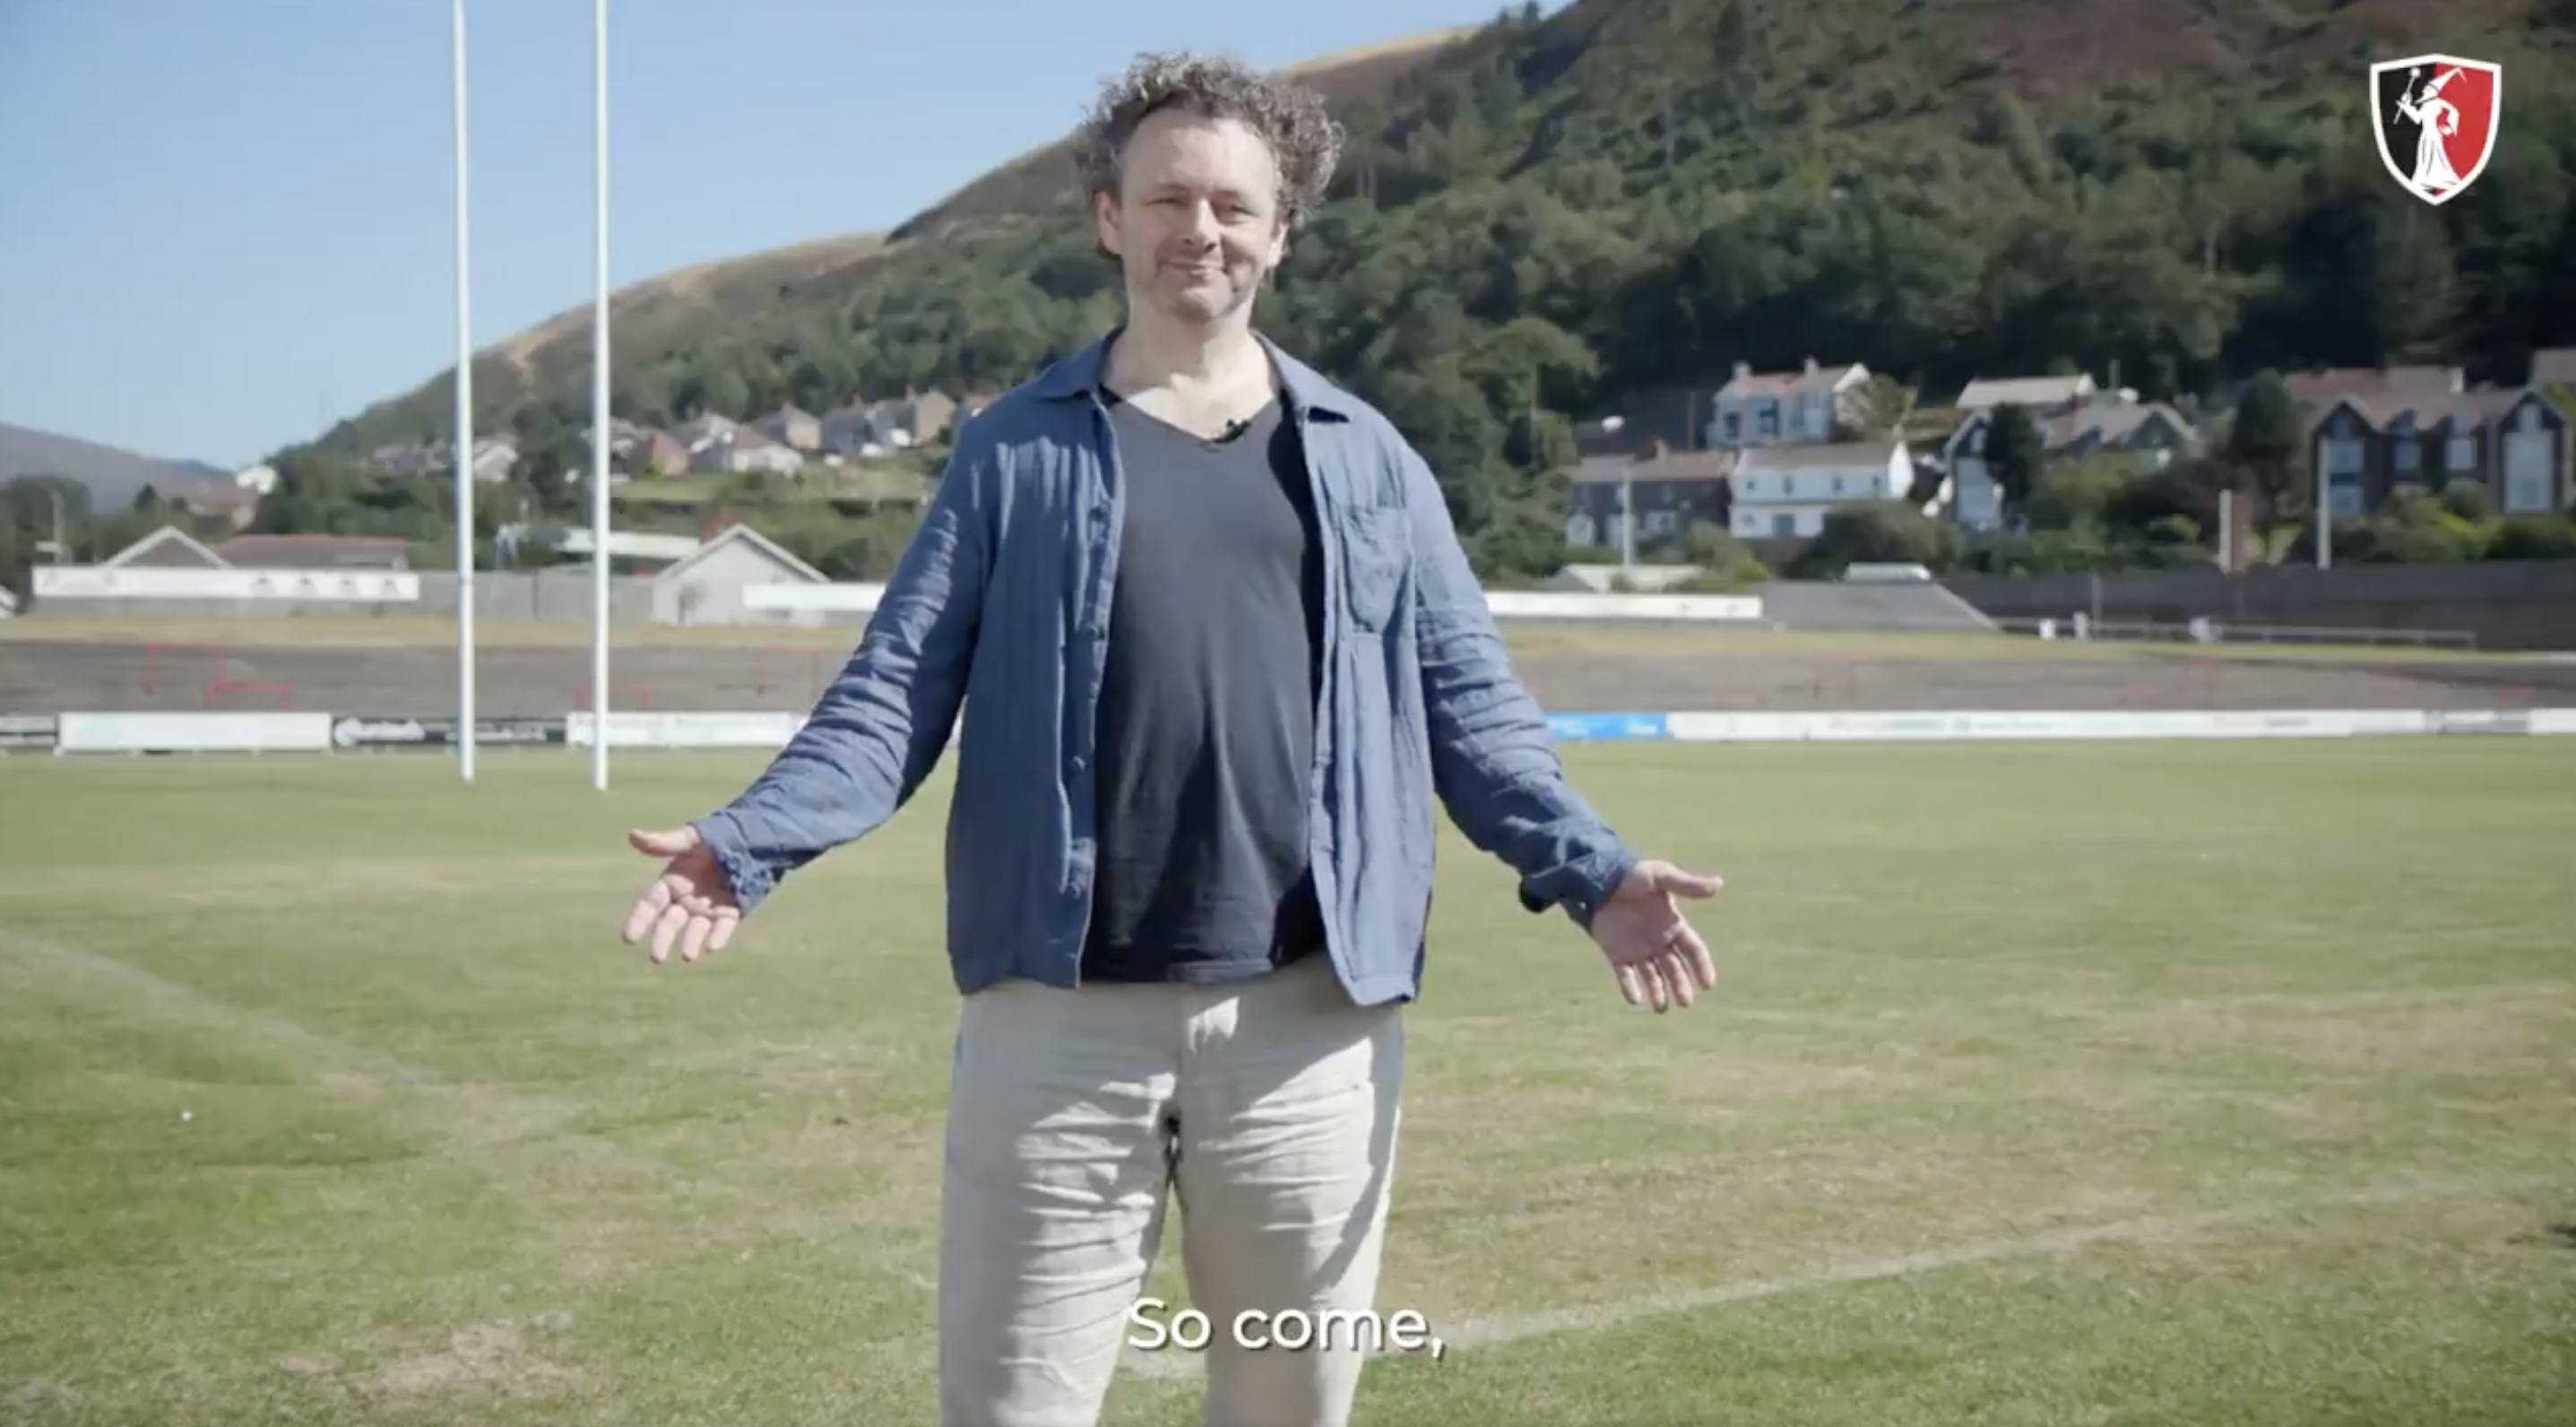 Quite possibly the most Welsh rugby promo ever has been created for a small rugby club